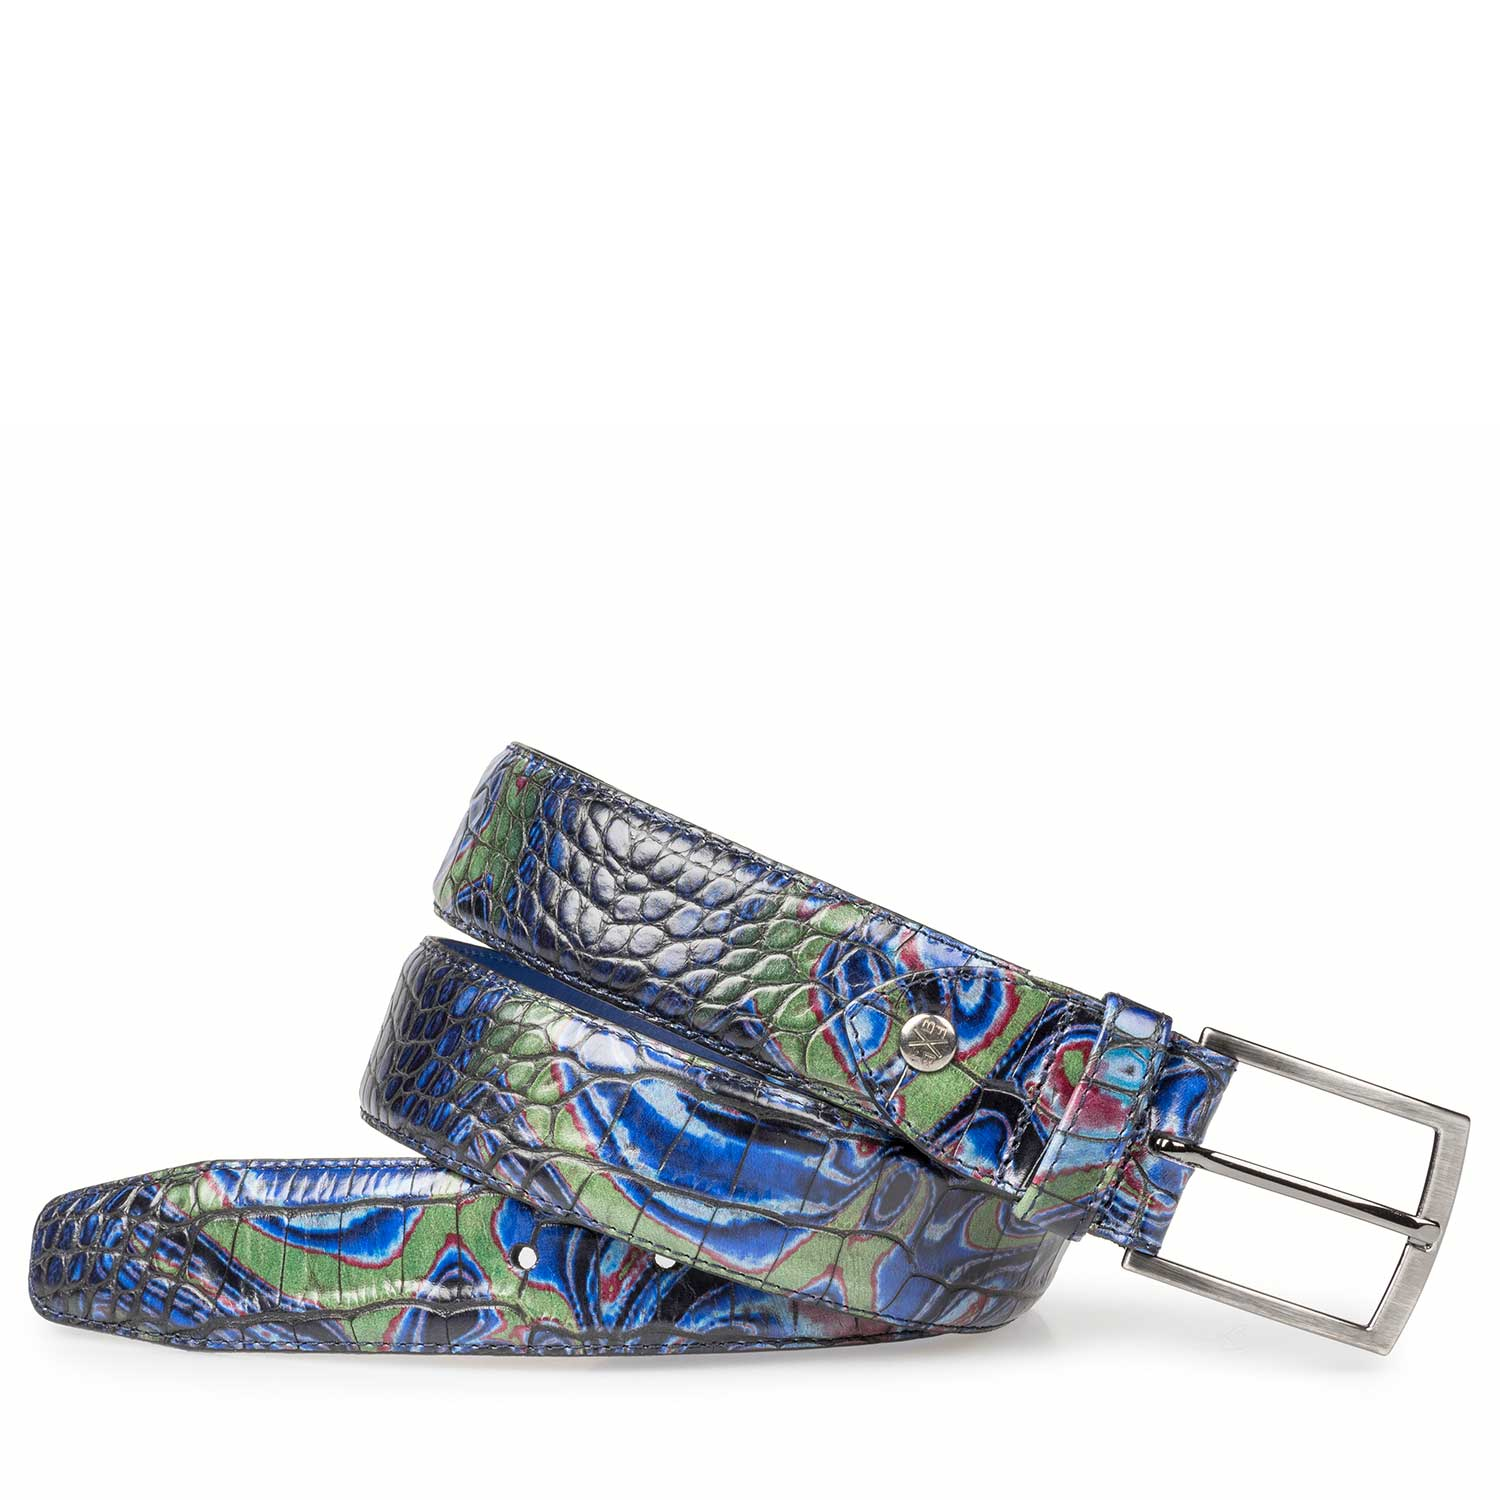 75190/32 - Blue Premium leather belt with croco print